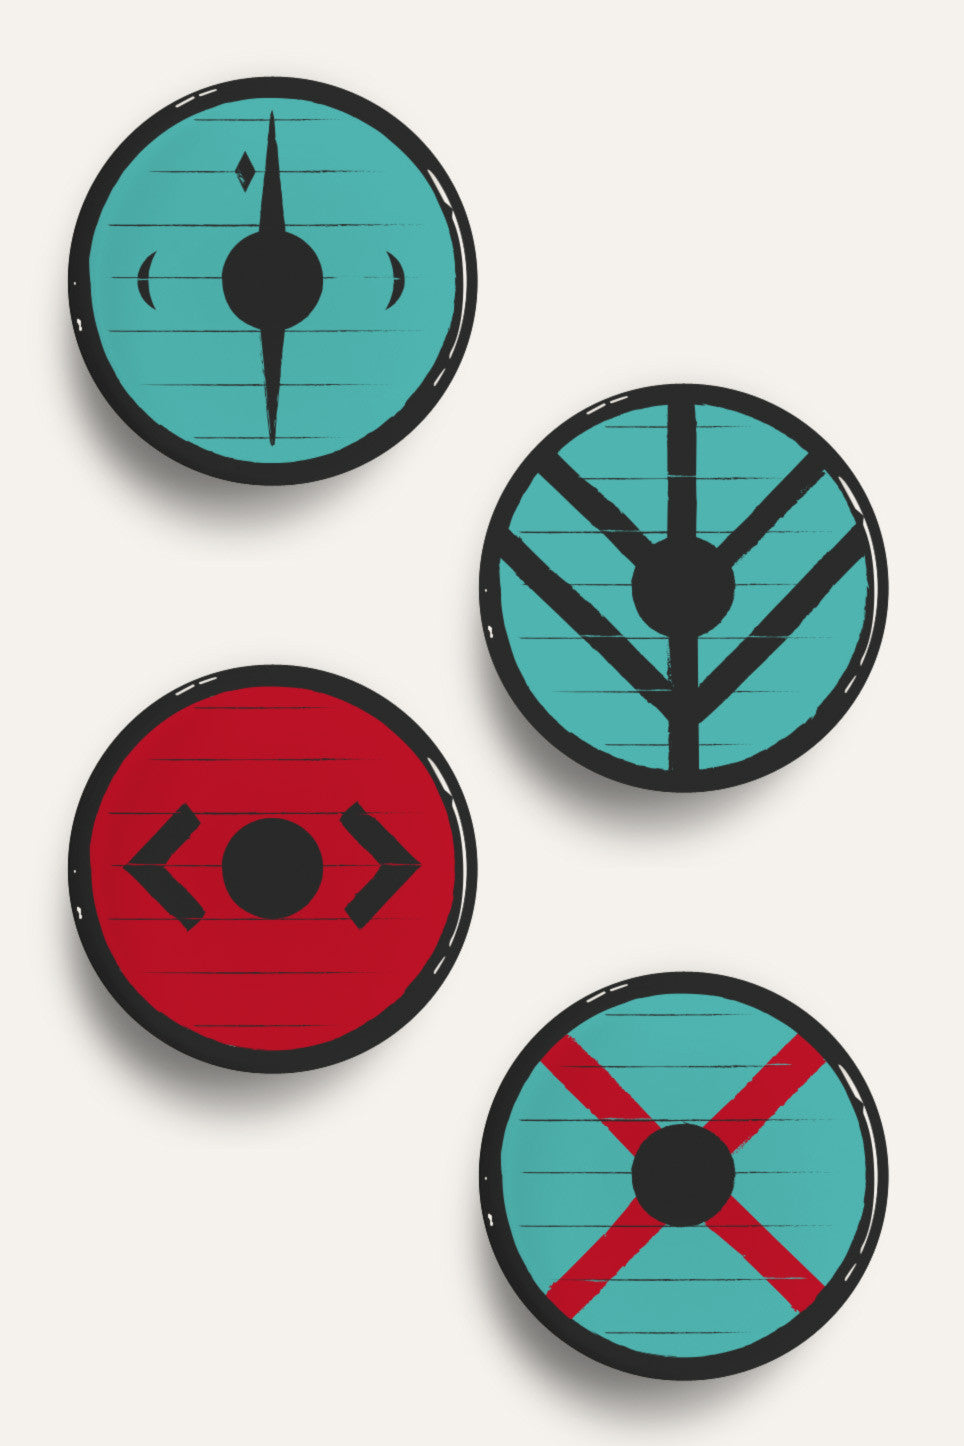 Vikings shields badges by Suxinsu